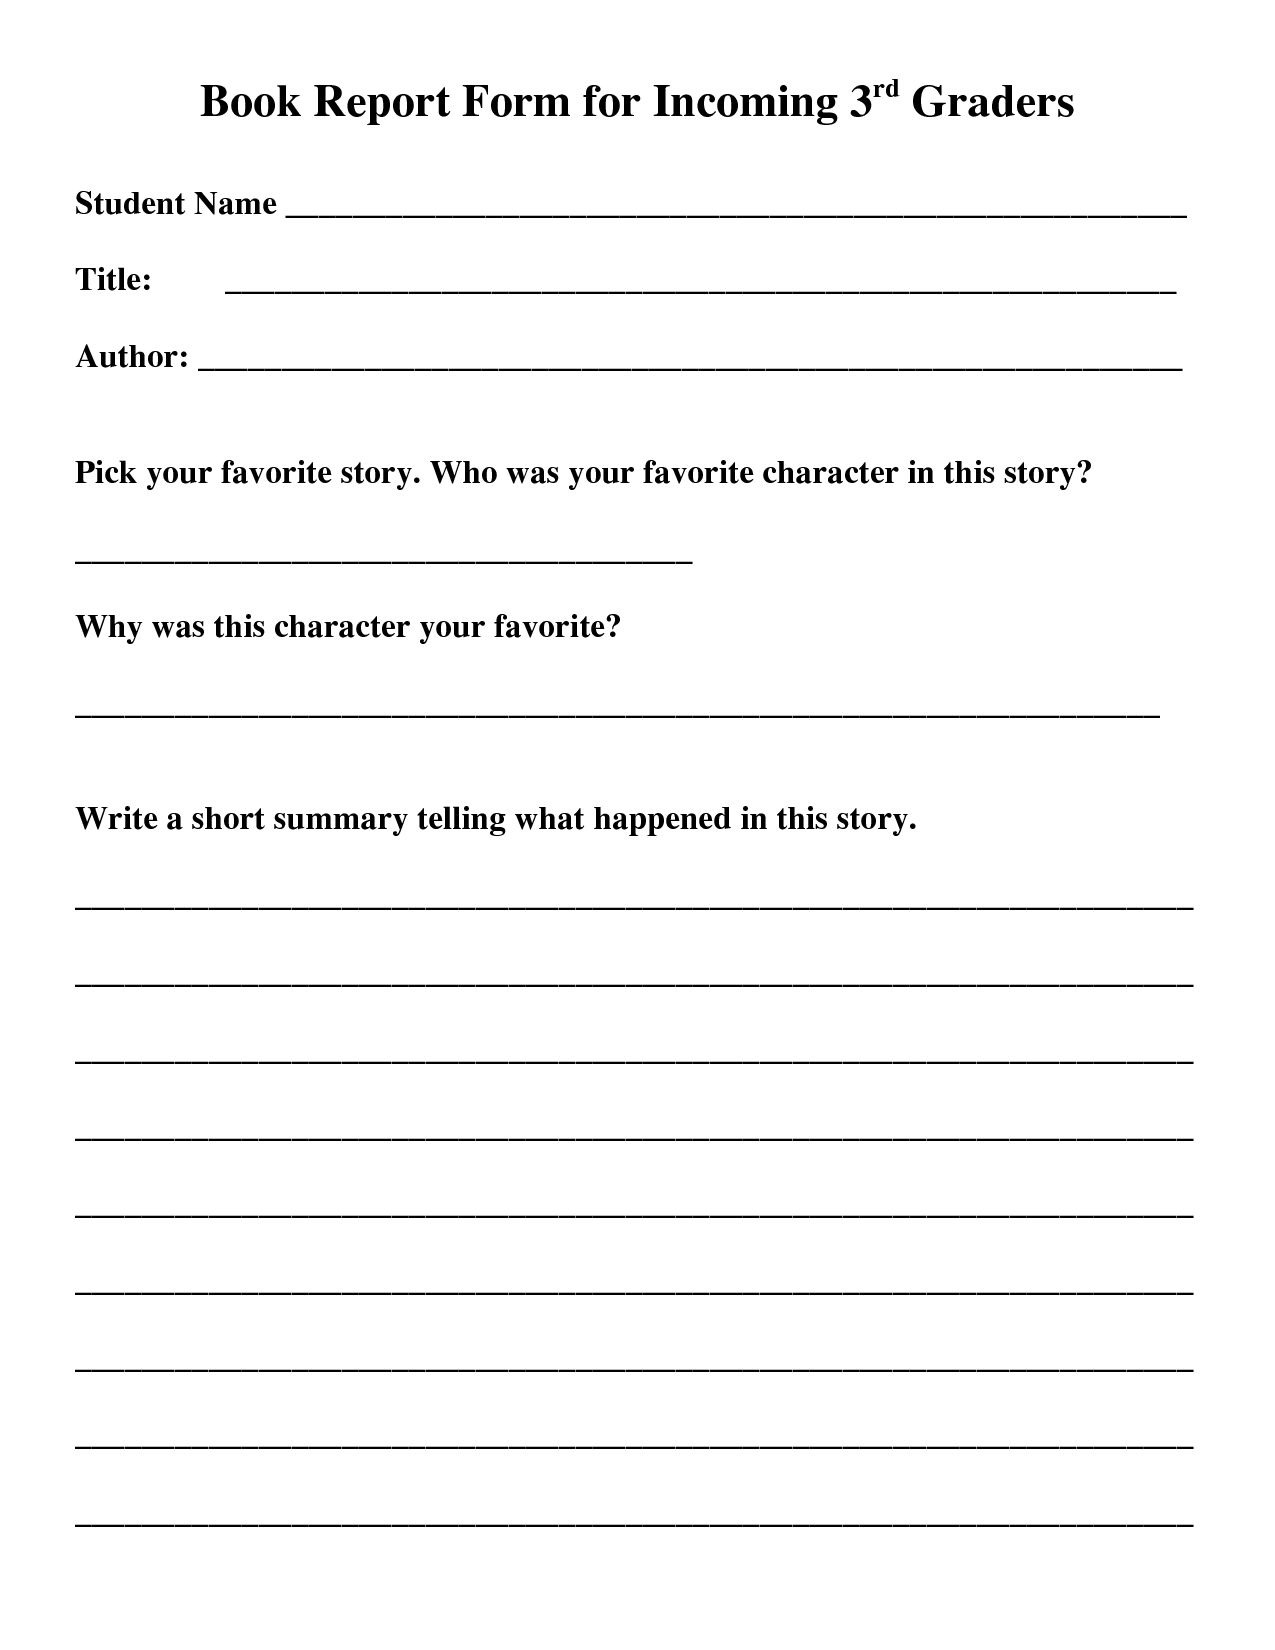 State Report Worksheet Printable Worksheets And Activities With Book Report Template 5th Grade Great C In 2020 Book Report Templates Second Grade Books Book Report